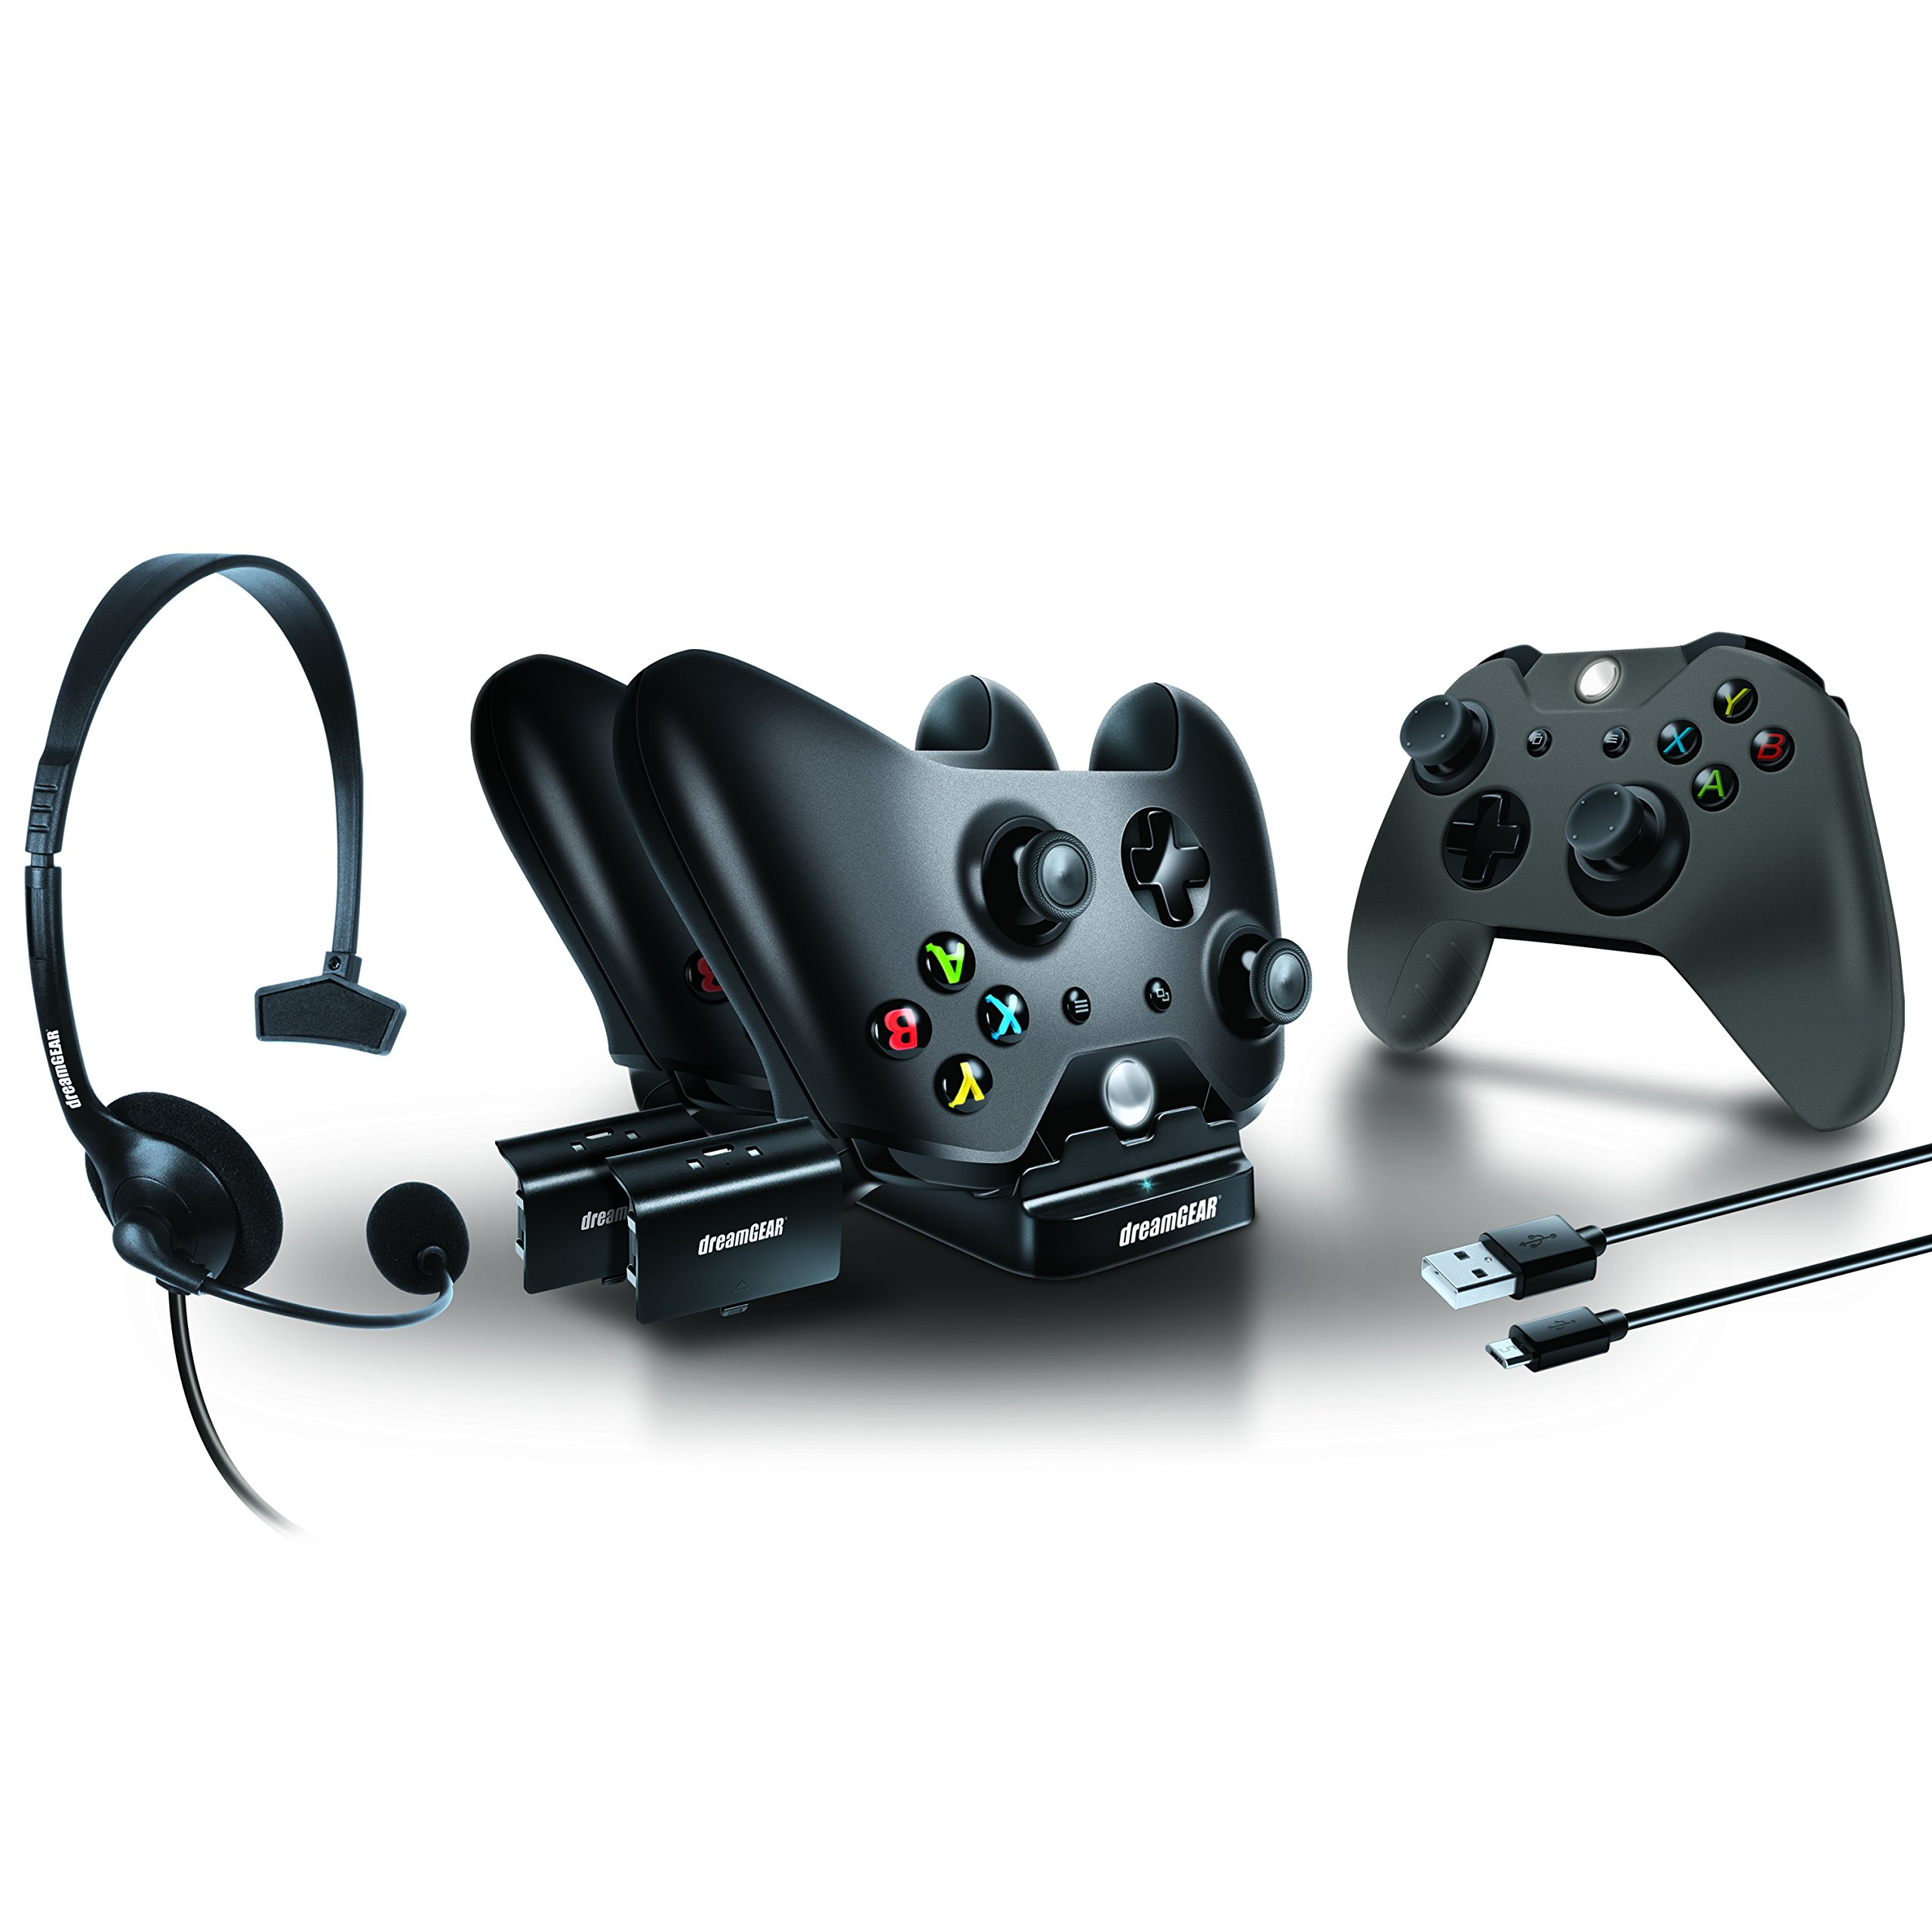 dreamGEAR – Player's Kit– includes charge dock/sync cable/headset/silicone controller cover – for Xbox One